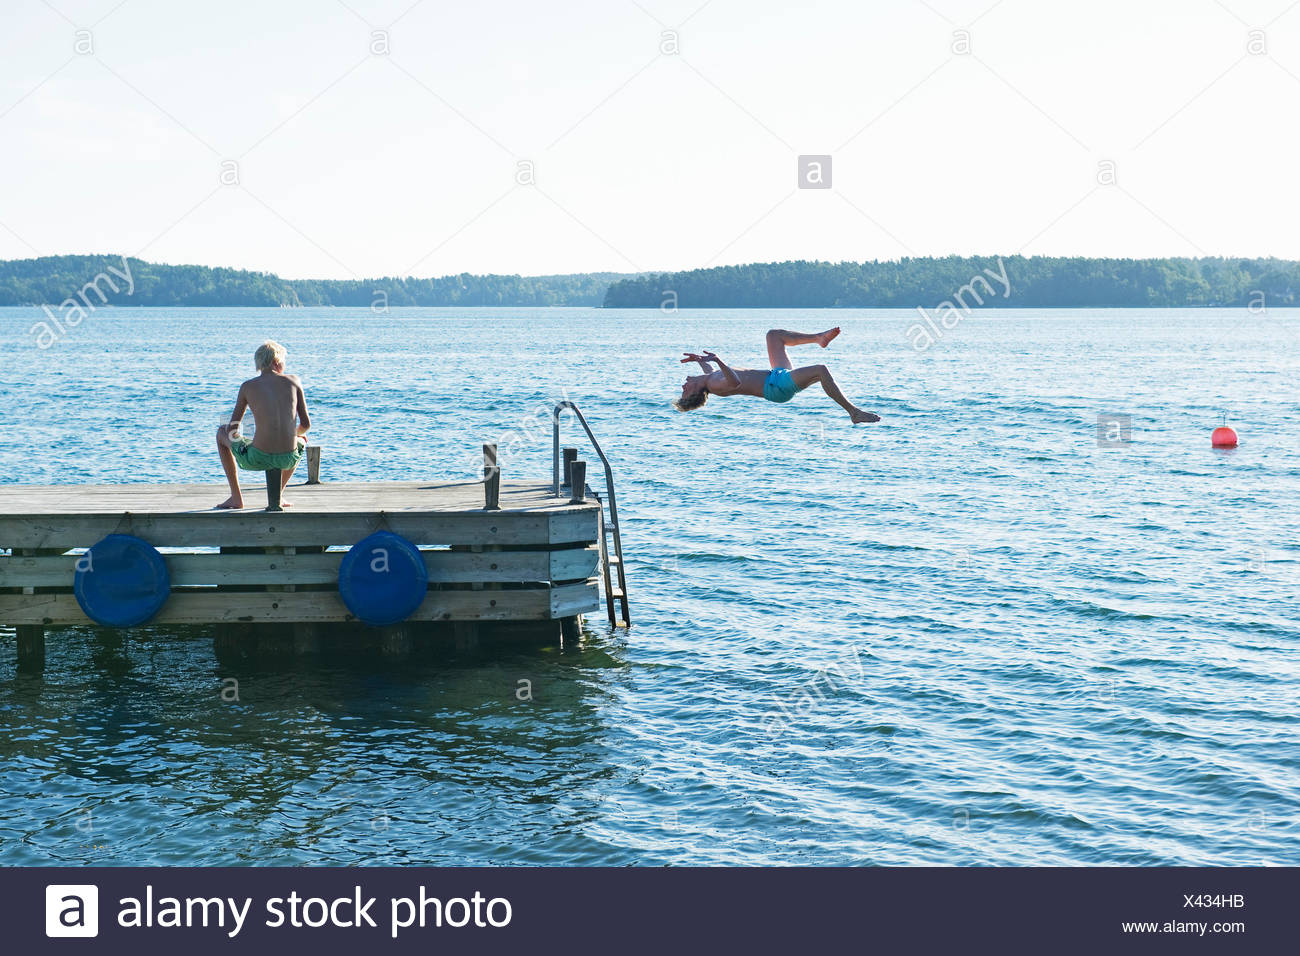 Young man jumping into water from pier - Stock Image